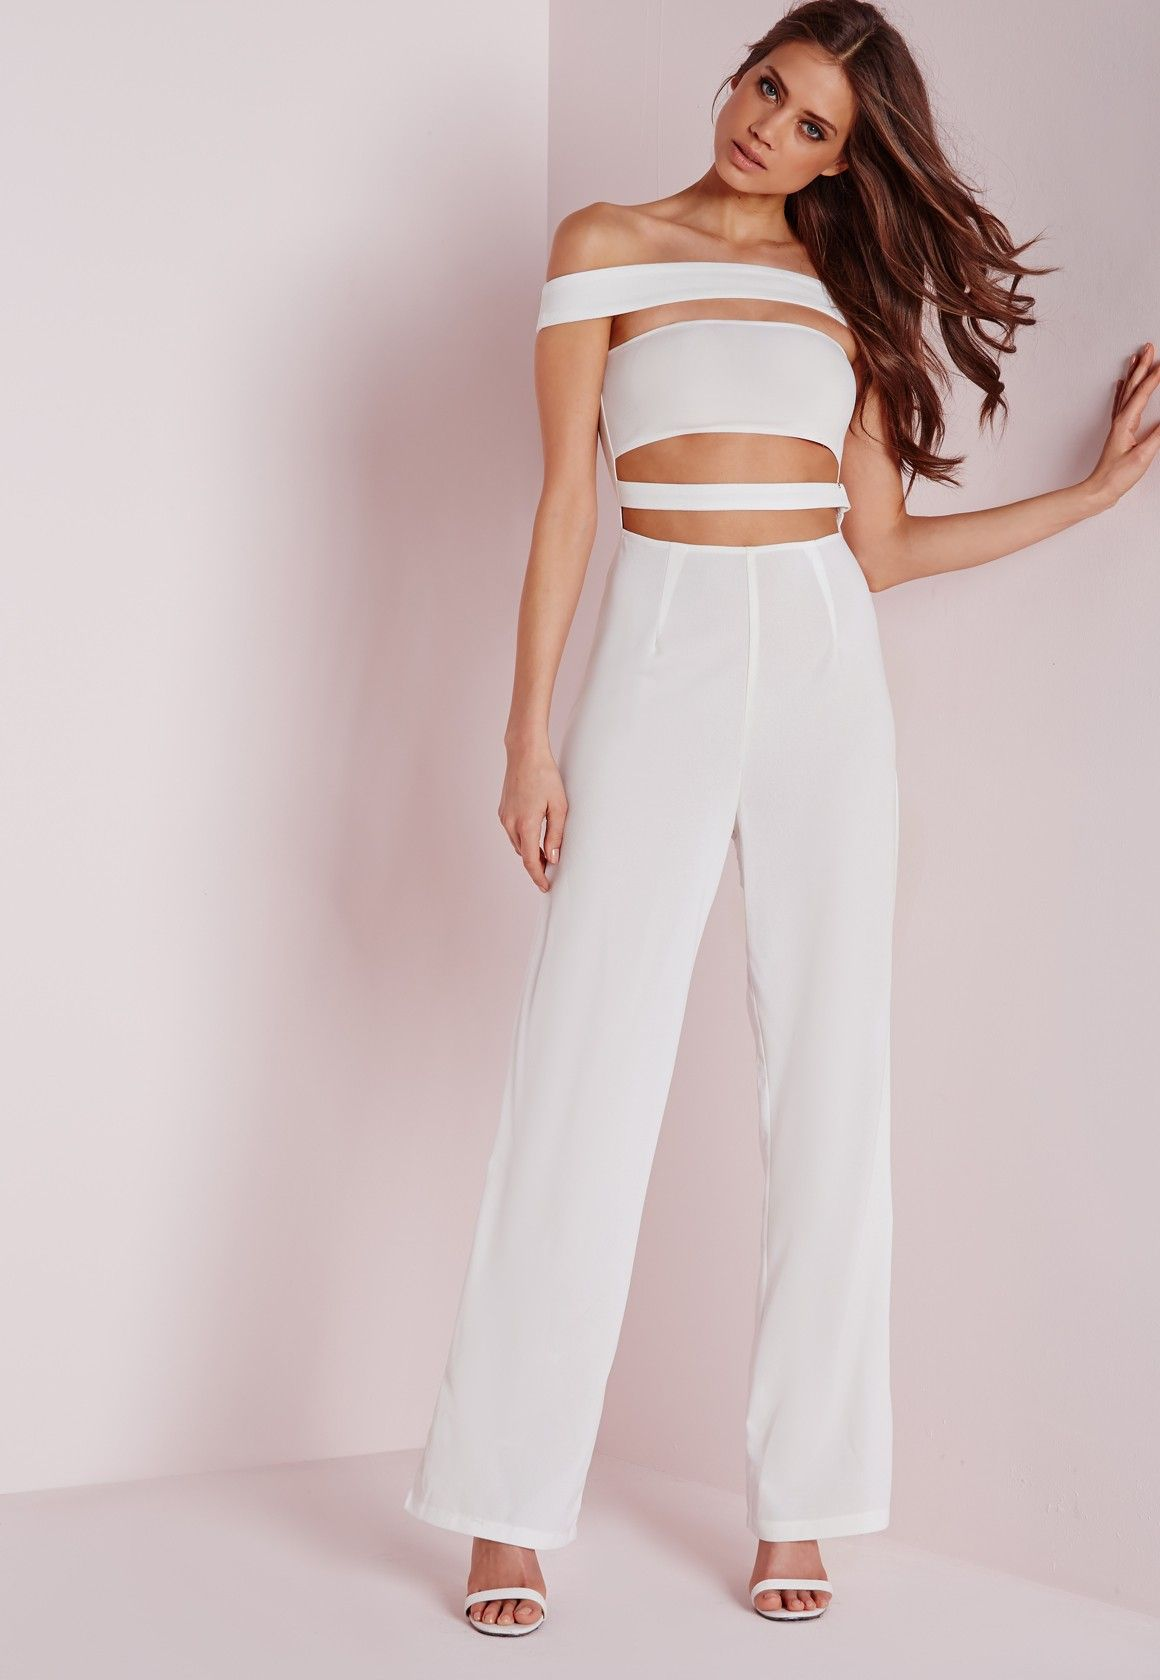 d00dc0a4a9e Missguided - Strappy Bardot Jumpsuit White White Jumpsuit